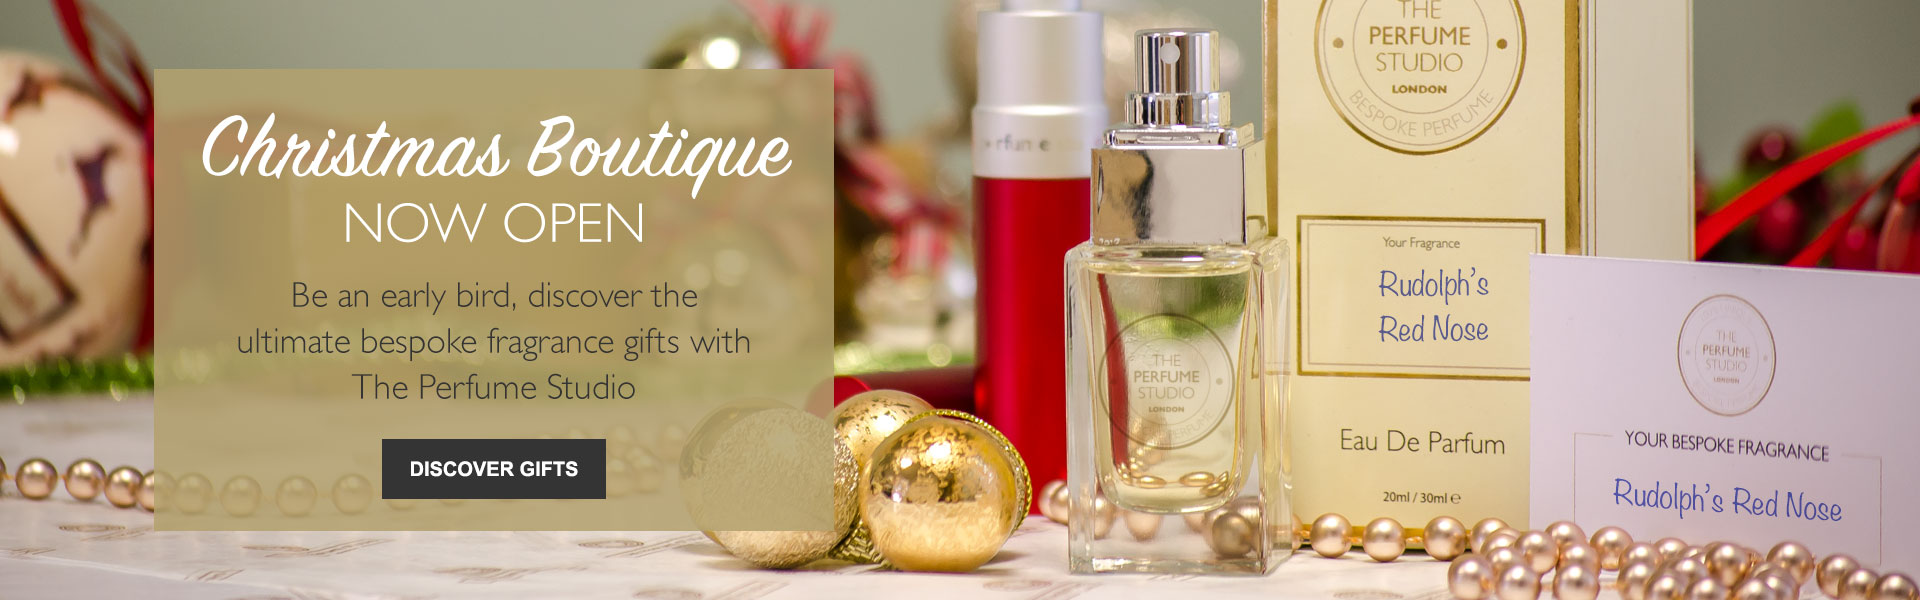 Christmas Boutique Now Open - Be an early bird, discover the ultimate bespoke fragrance gifts with The Perfume Studio